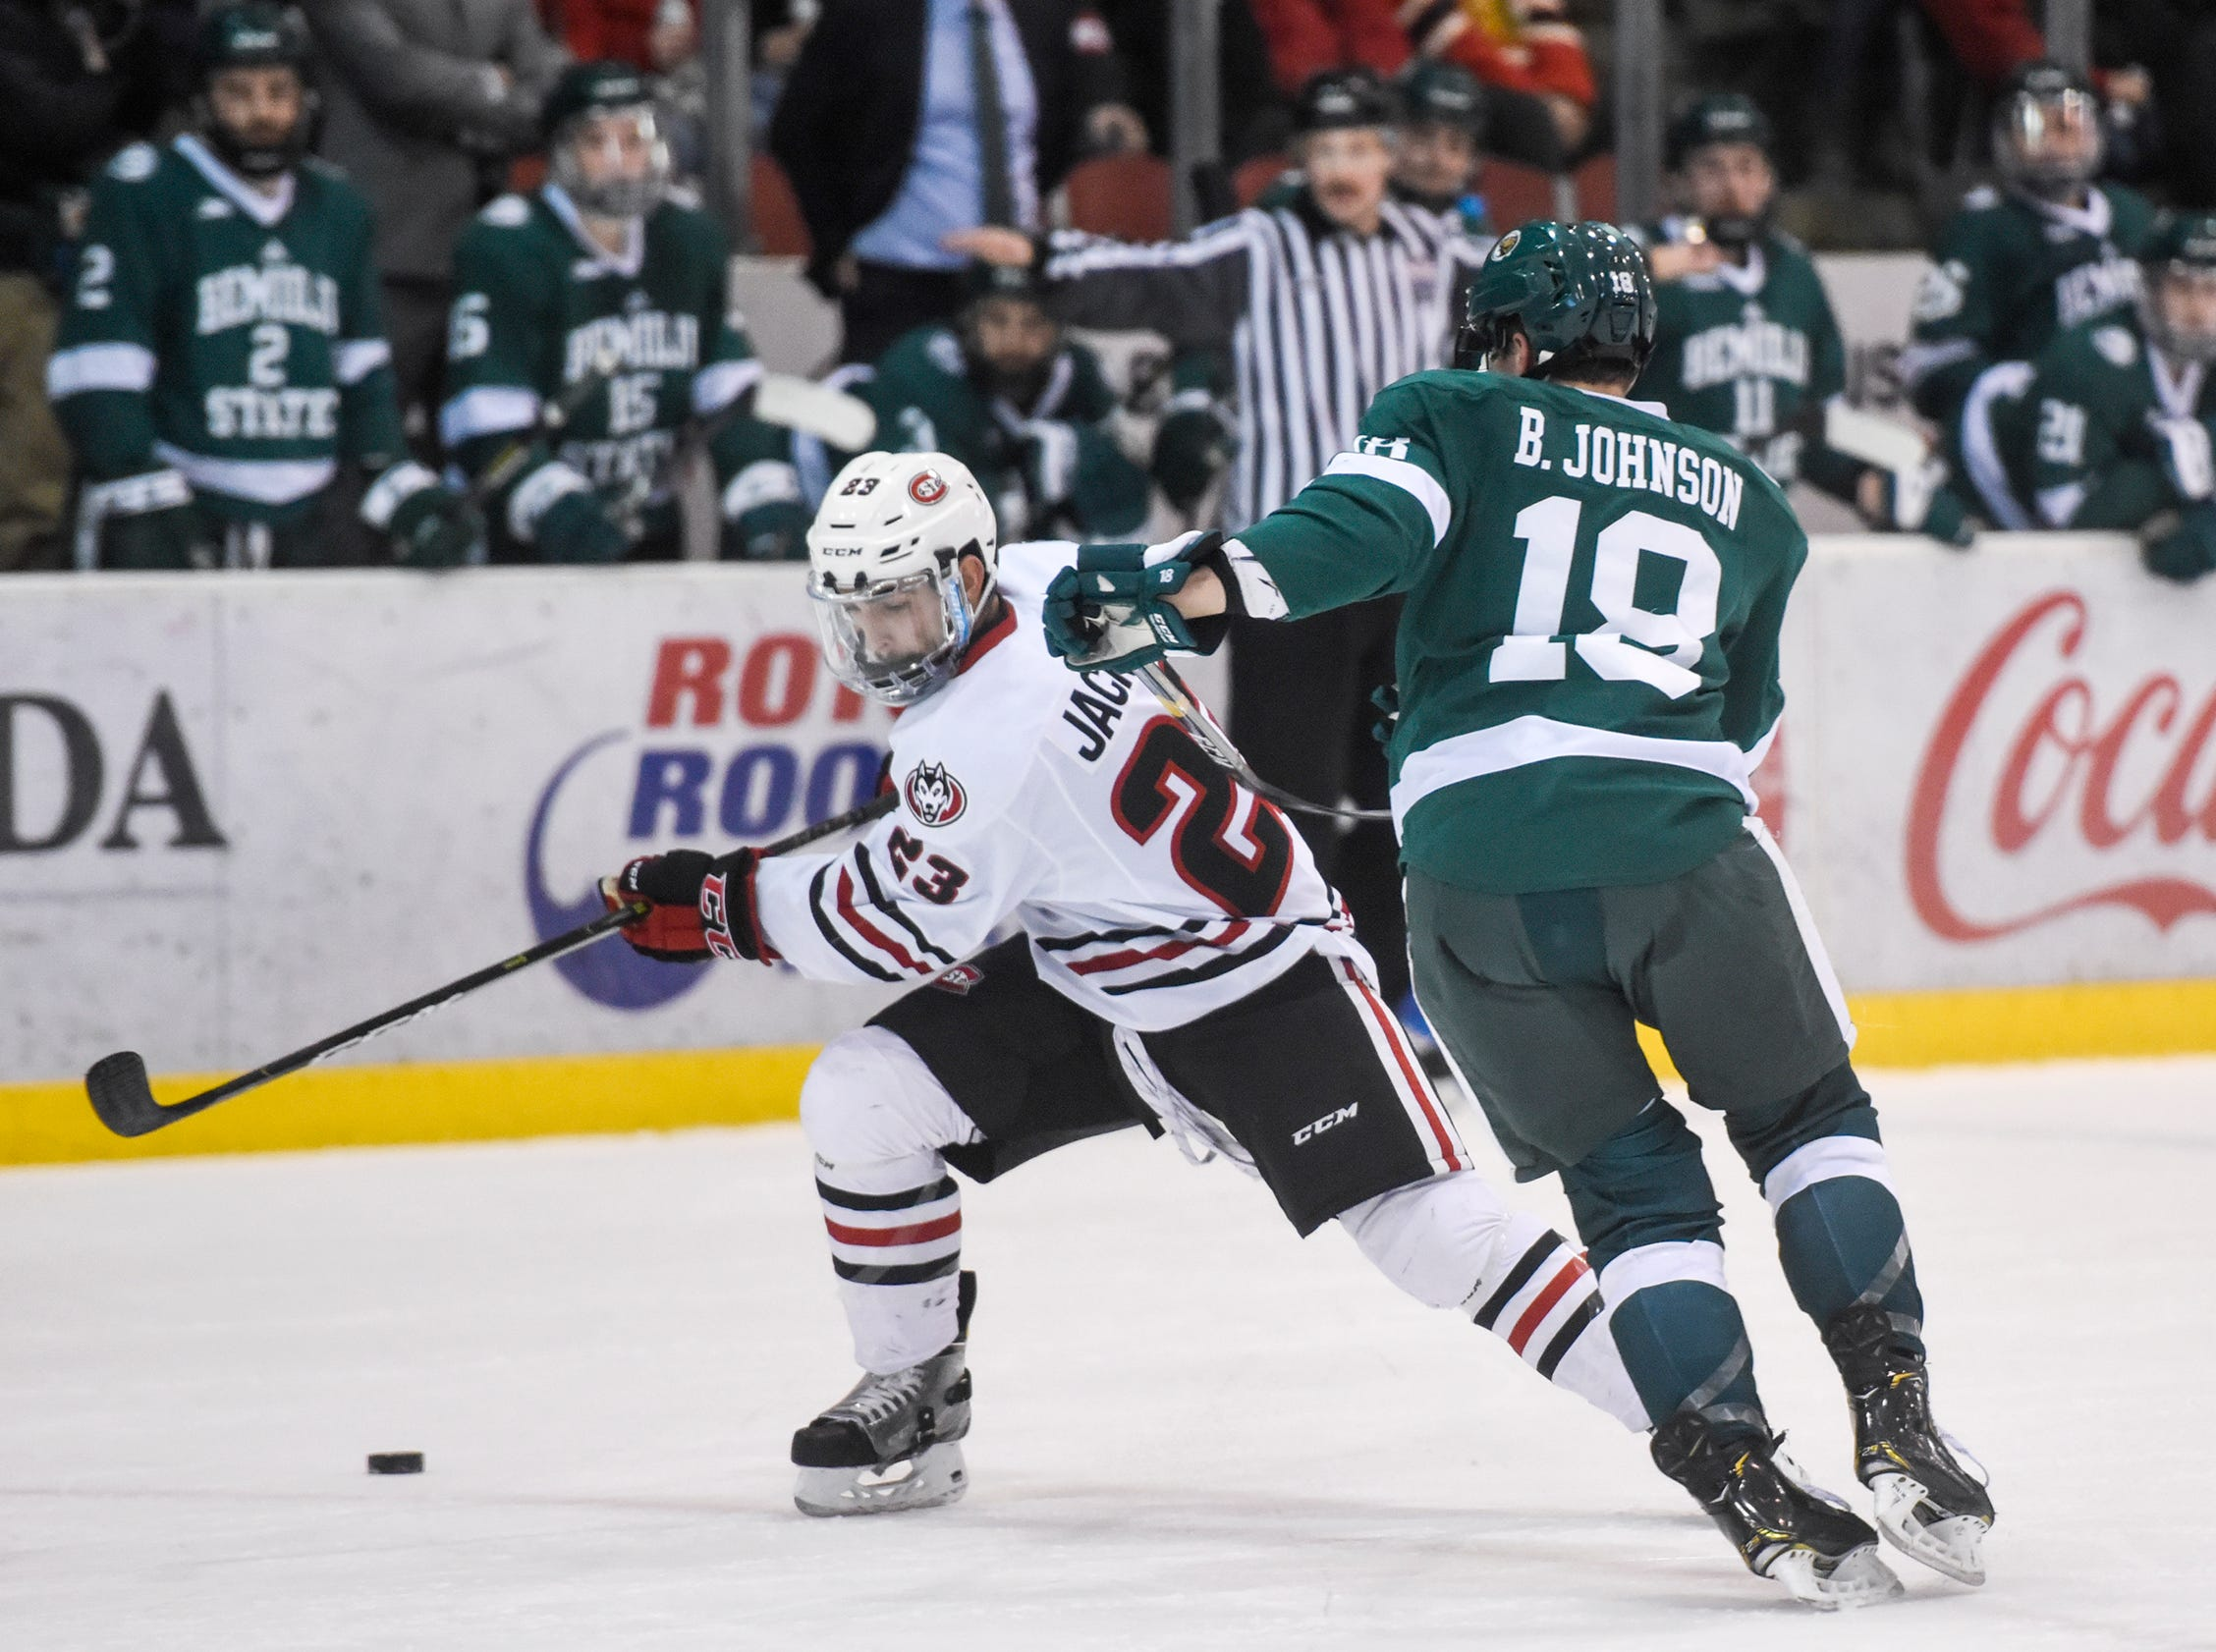 St. Cloud State's Robby Jackson skates with the puck during the first period of the Friday, Nov. 16, game against Bemidji State at the Herb Brooks National Hockey Center in St. Cloud.